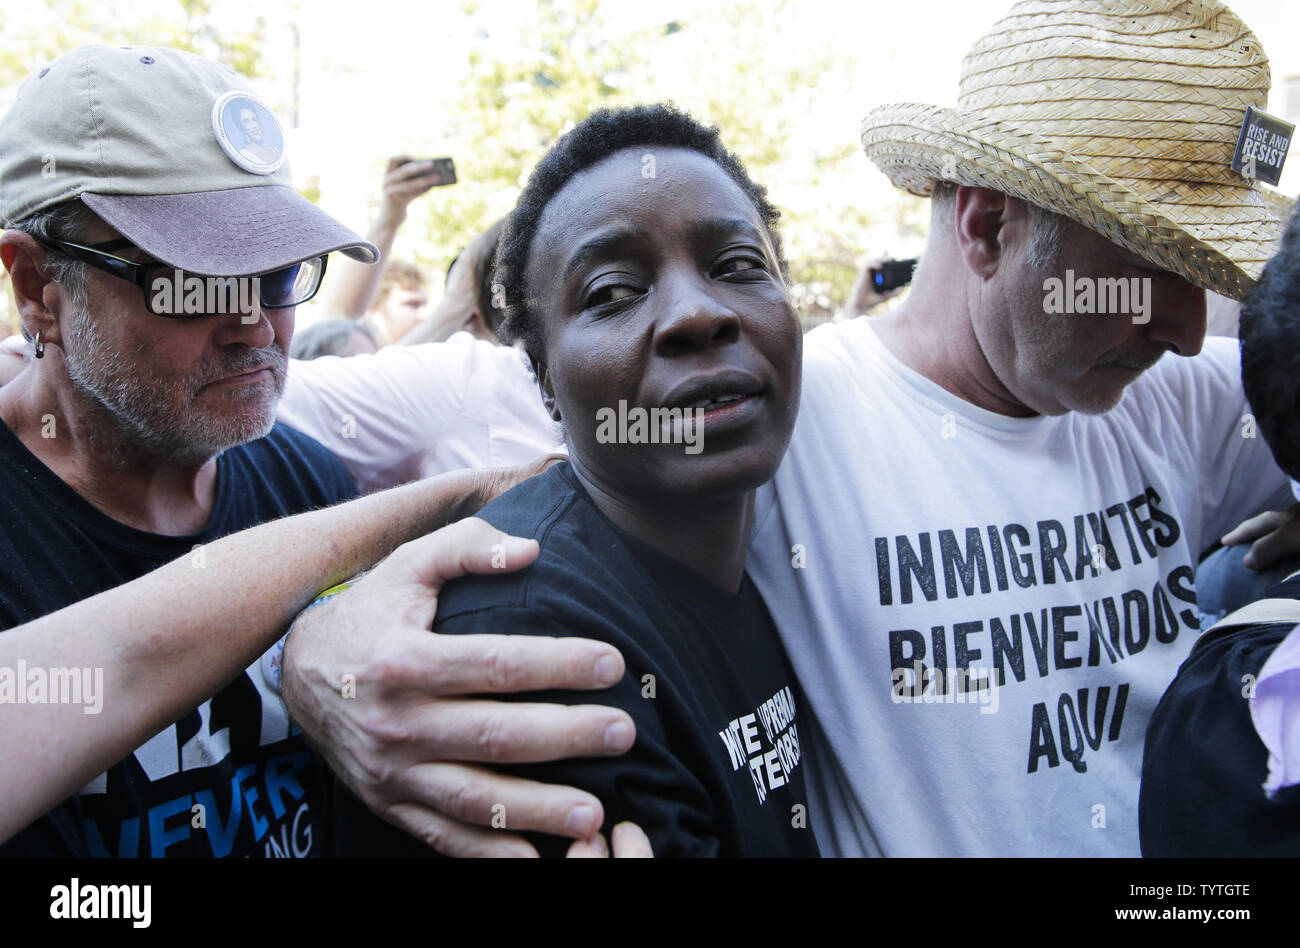 Statue Of Liberty climber and Rise and Resist protester Therese Okoumou exits Court with supporters in New York City on July 5, 2018 in New York City. The woman who partially climbed up the Statue of Liberty on July 4th Independence Day and prompted authorities to evacuate Liberty Island was released without bail, and if convicted would face up to six months behind bars.    Photo by John Angelillo/UPI Stock Photo